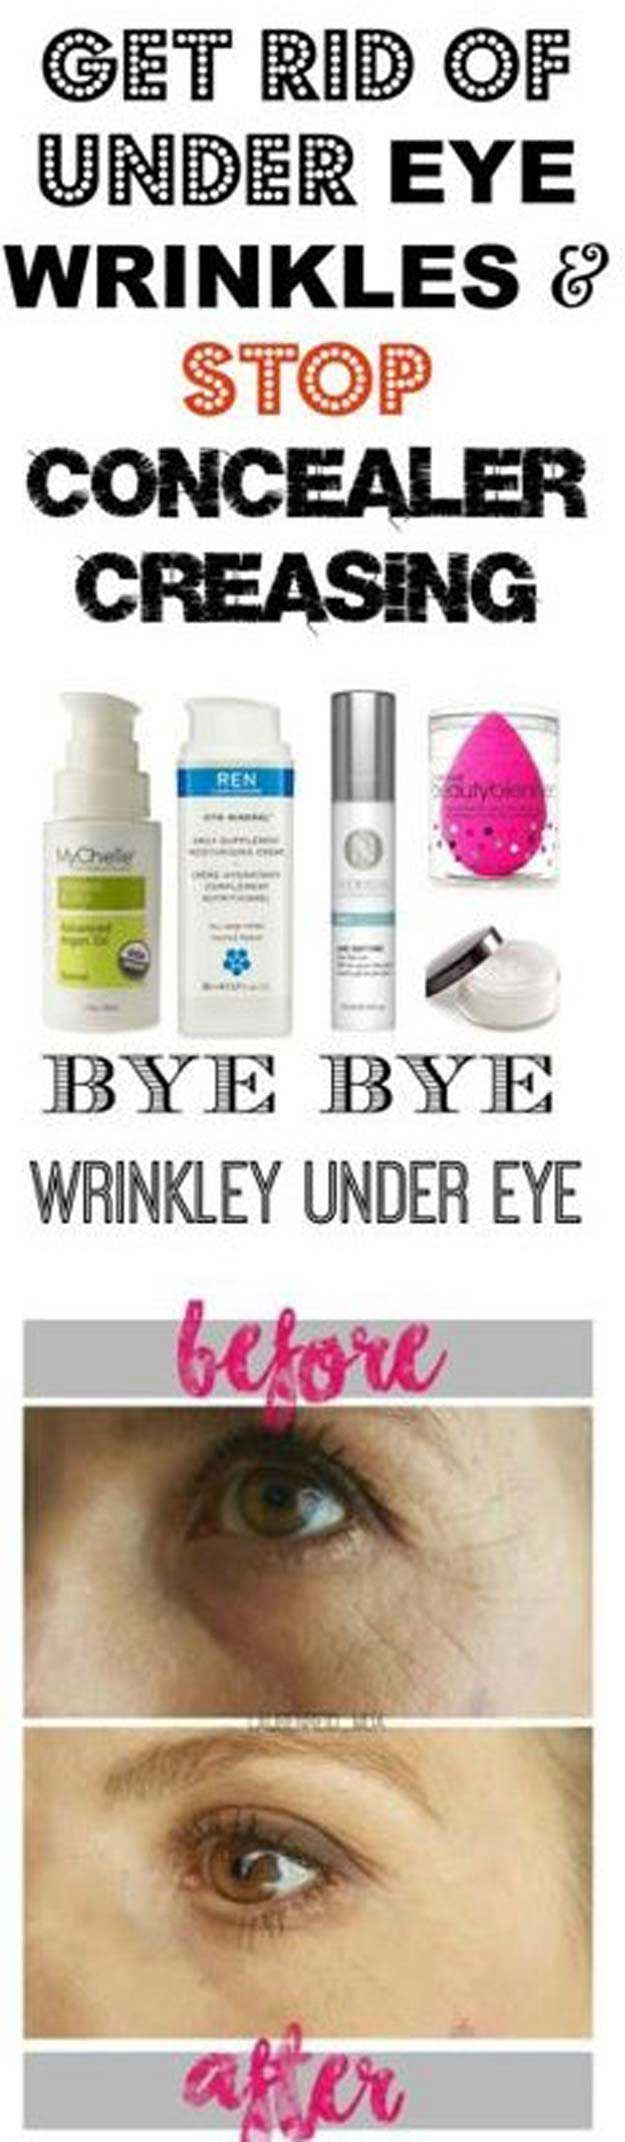 Makeup Tips That Make Wrinkles Vanish - Get Rid Of Under Eye Wrinkles And Stop Concealer Creasing - Make Up and Anti Aging Skin Care Home Remedies and Essential Oils - How To Get Faces To Look Years Younger - Skincare Products For Women to Combat Crows Ar #homemadewrinklecreamshowtomake #homemadewrinklecreamsbeauty